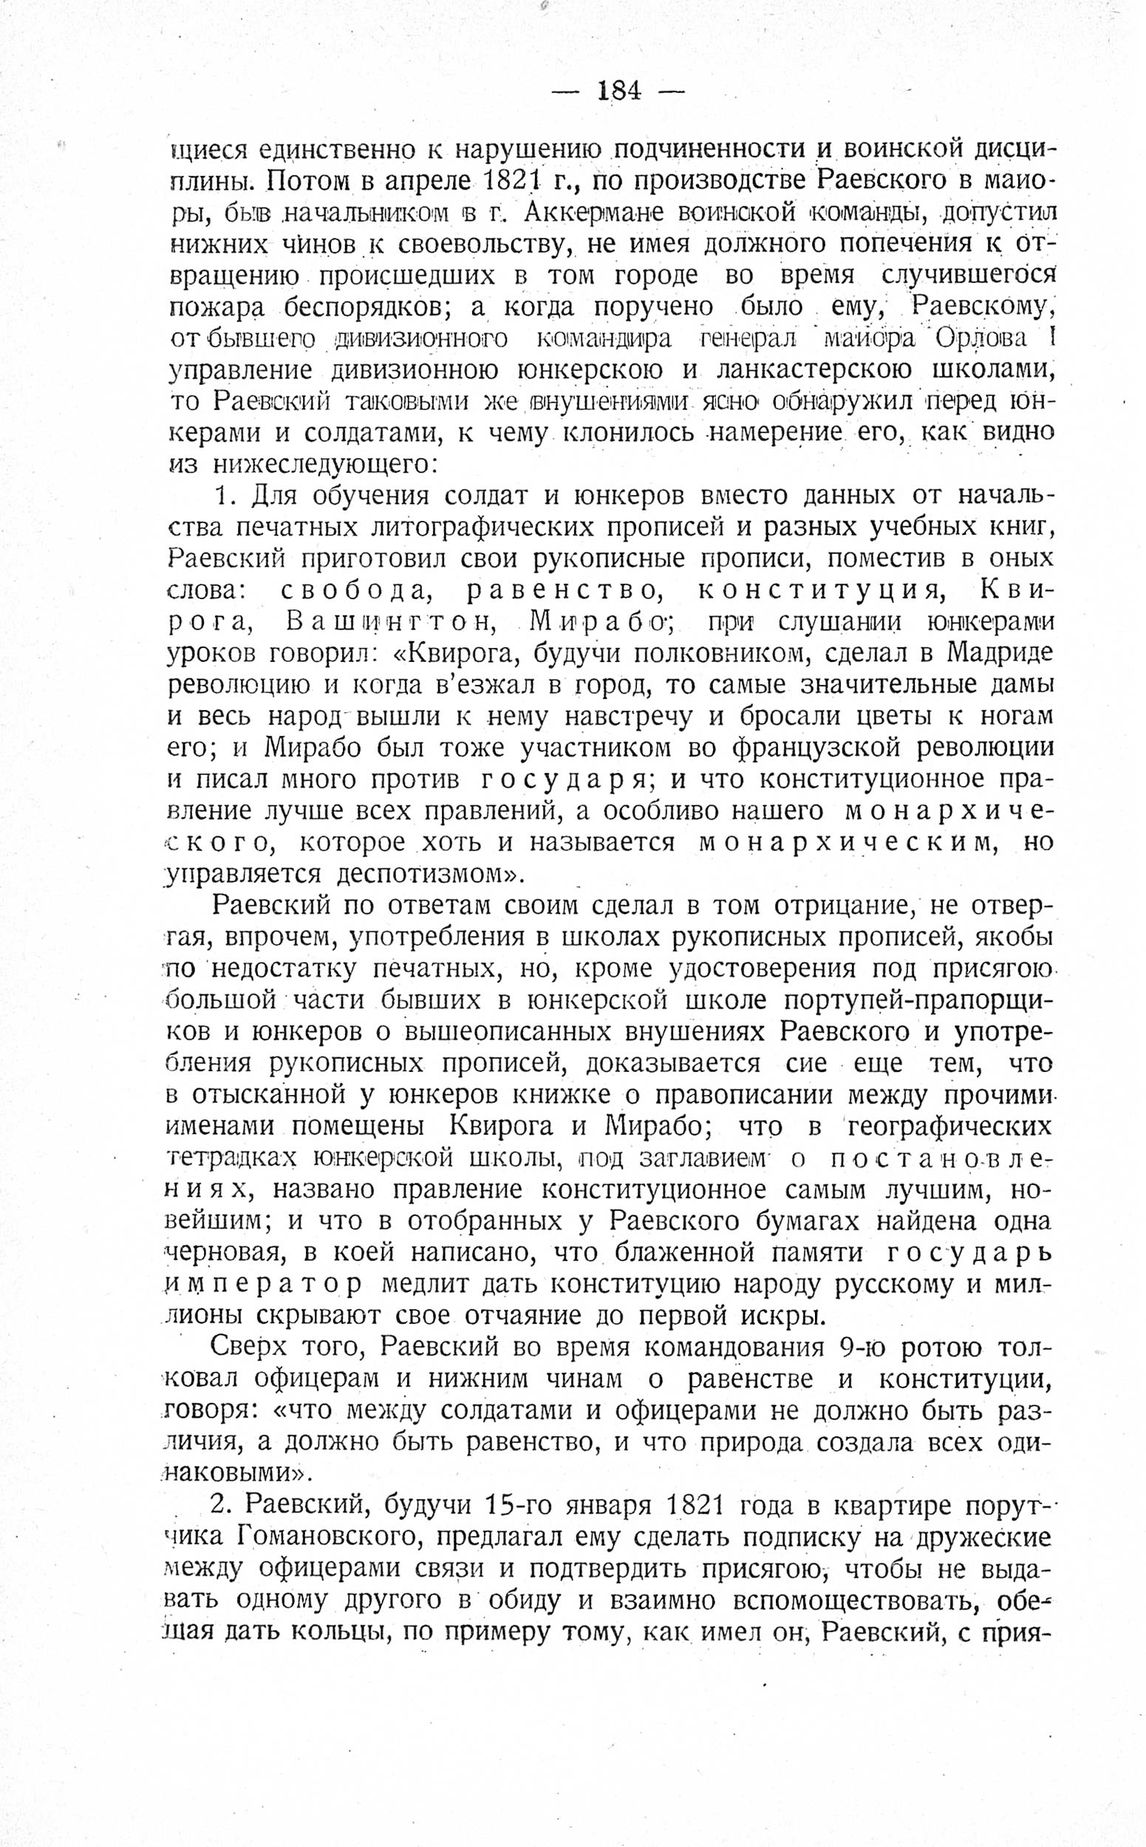 http://elib.shpl.ru/pages/625767/zooms/7